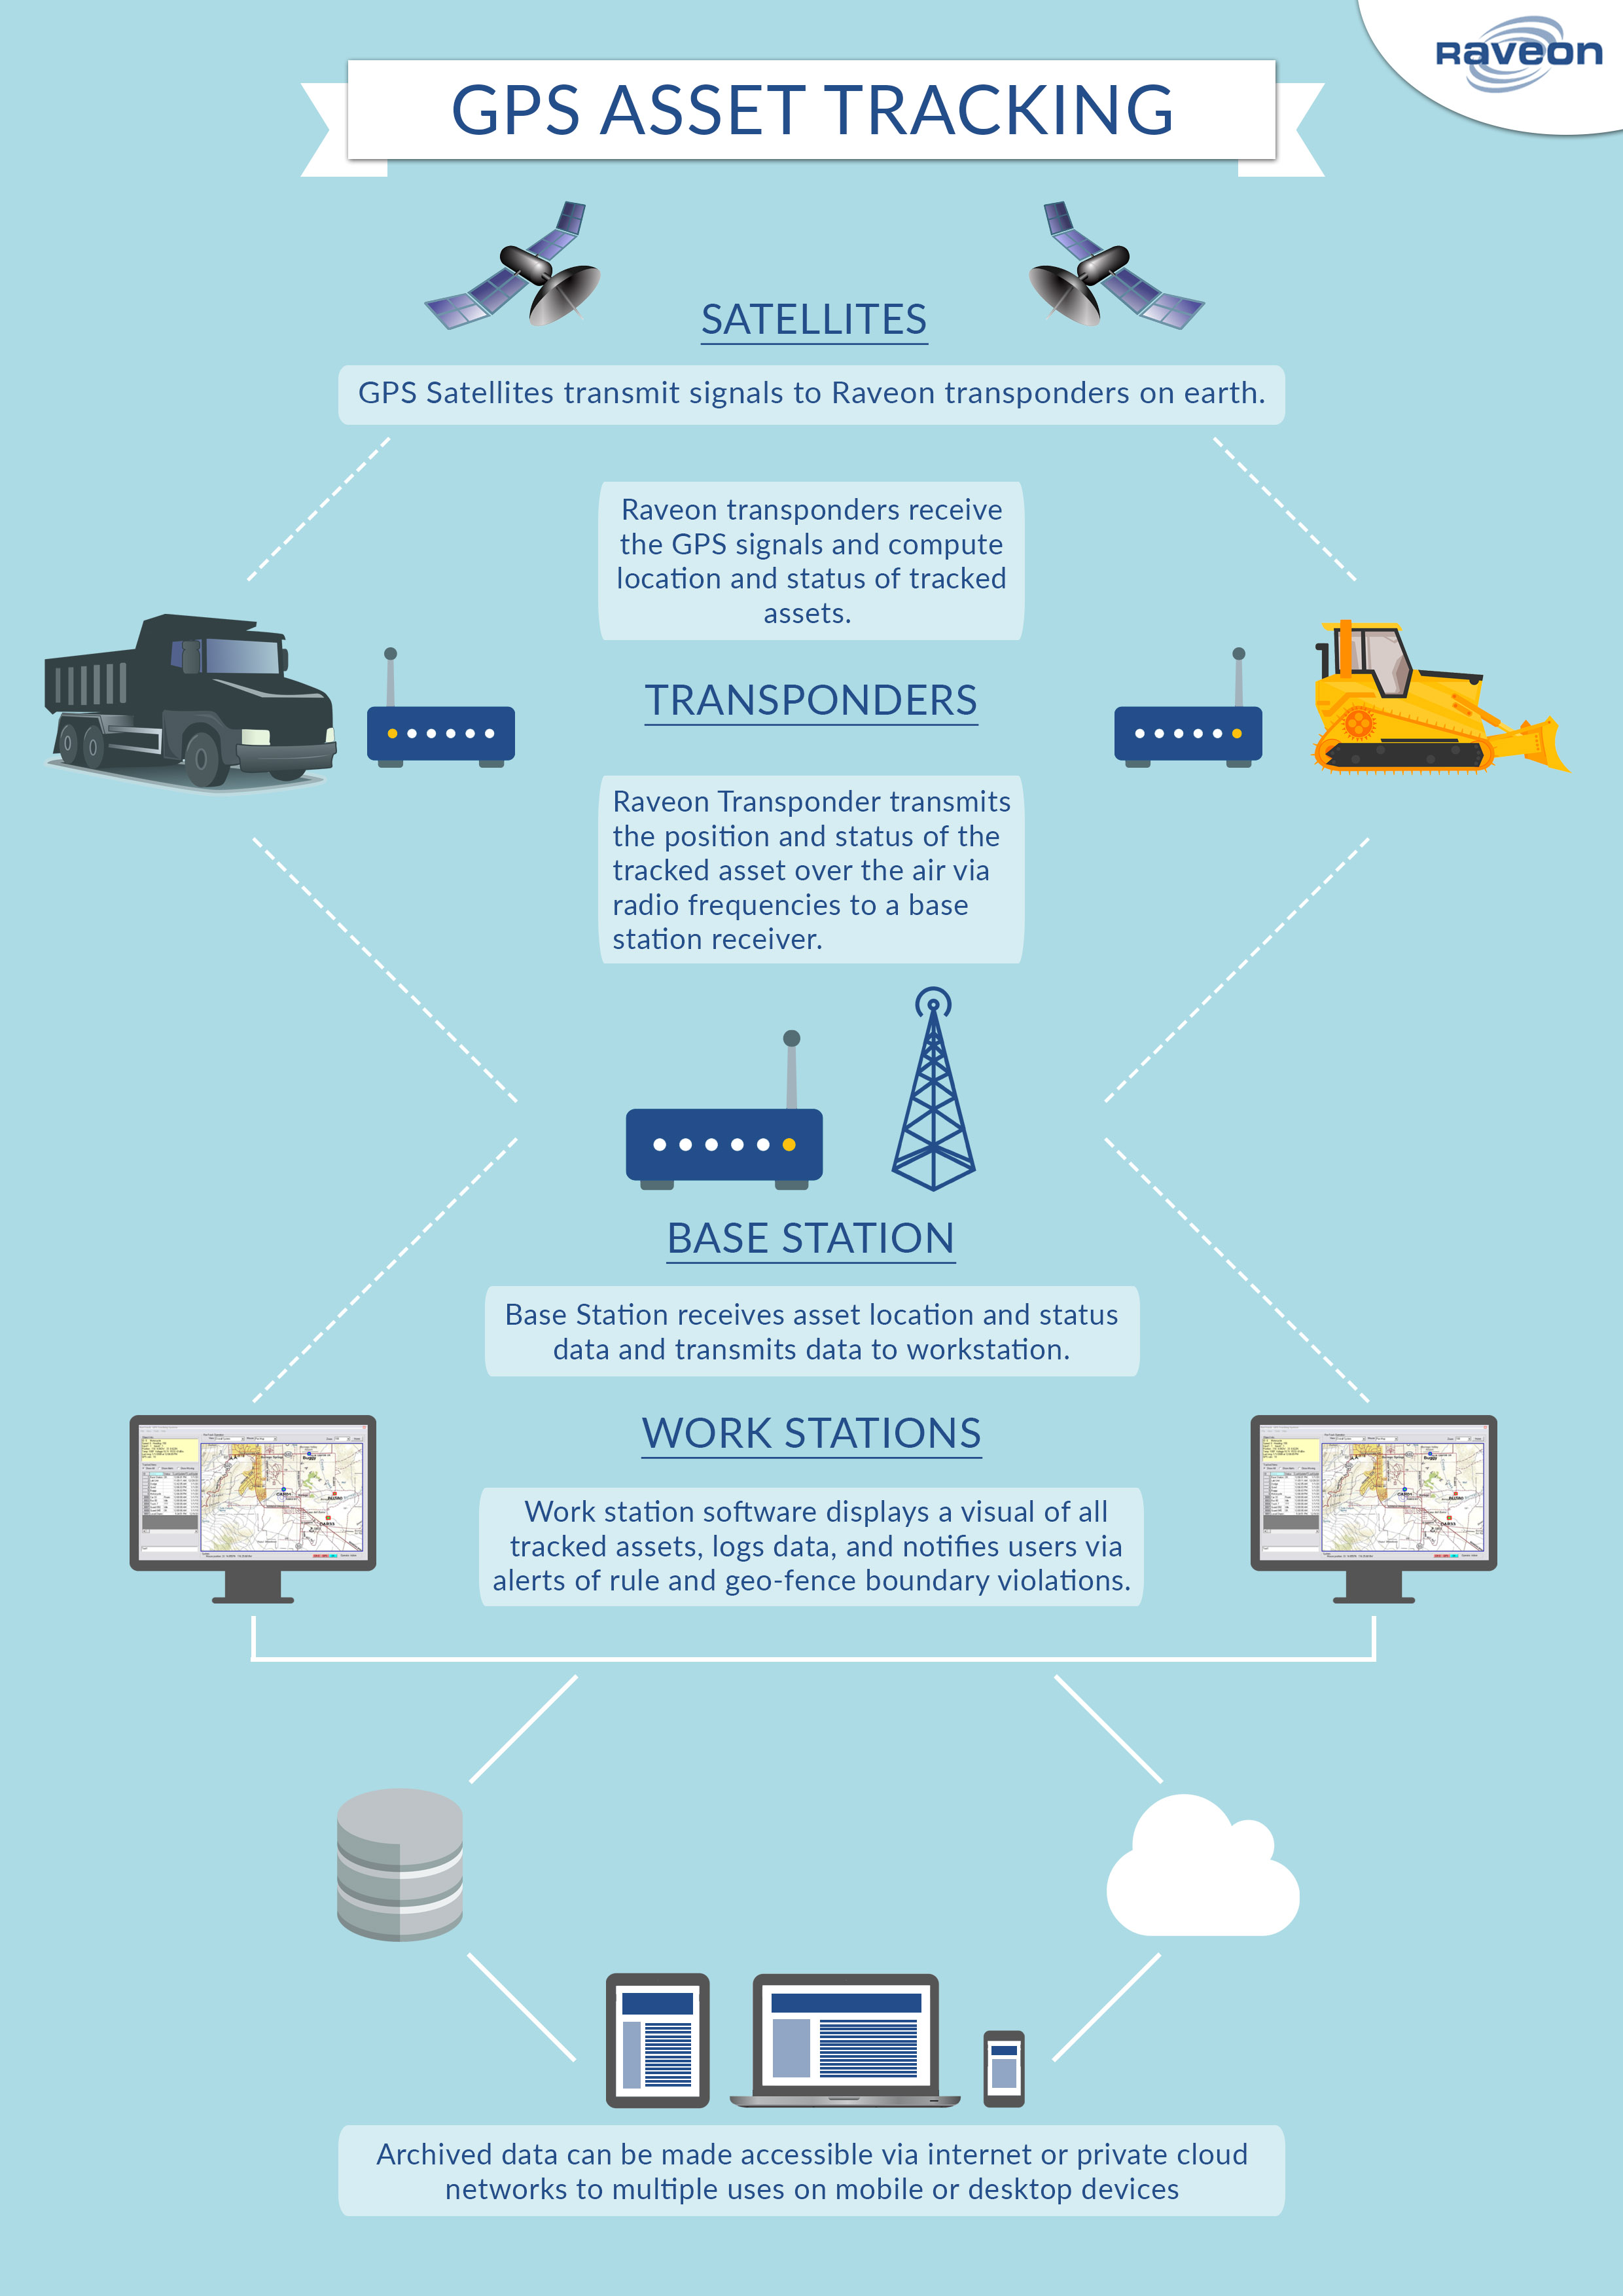 Infographic about mining, oil, and gas industry asset tracking